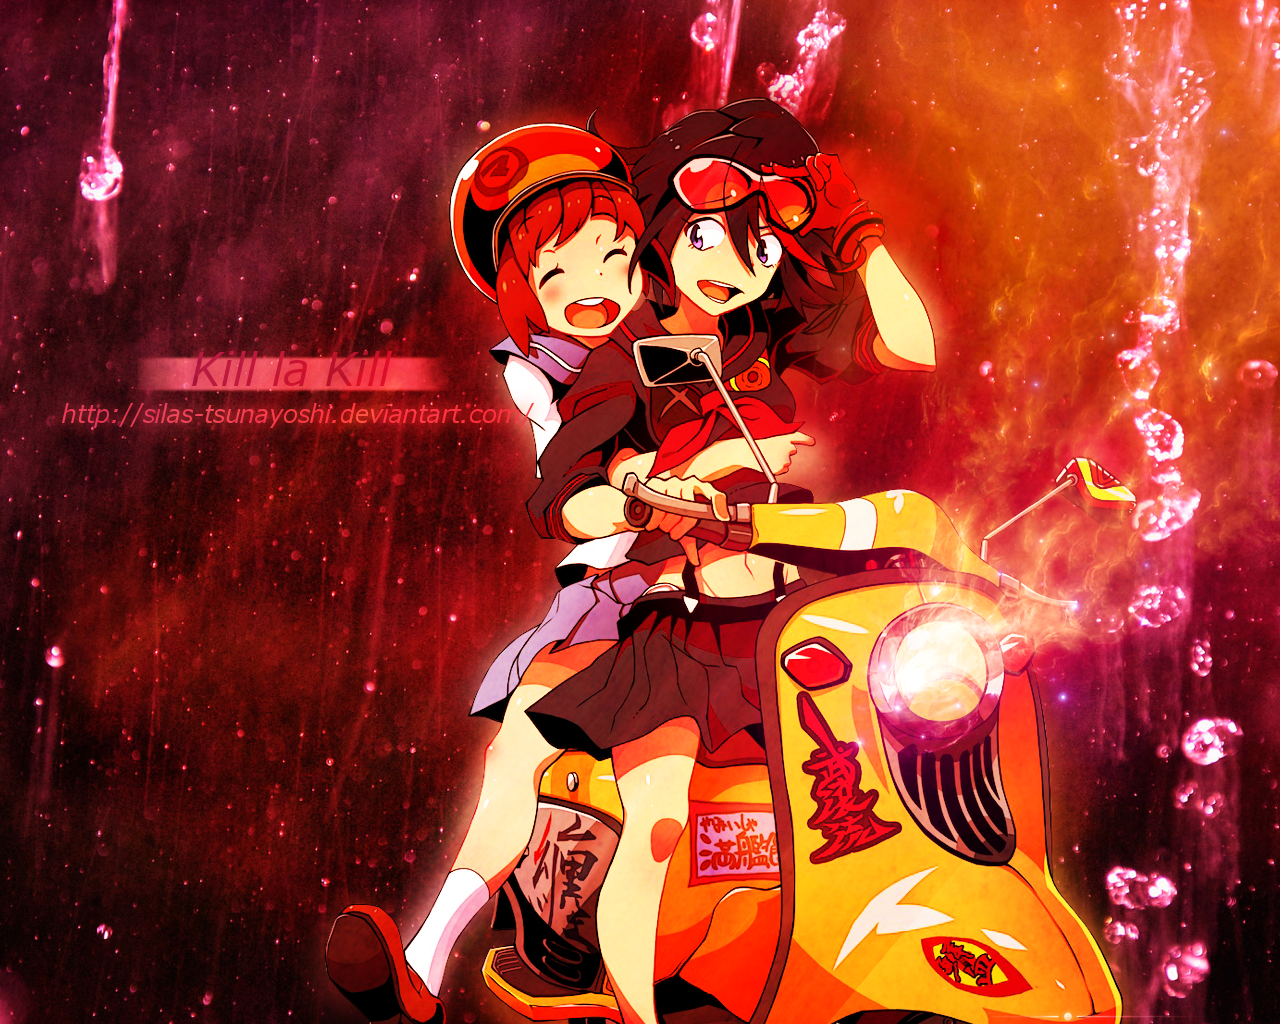 Kill La Kill Ryuko And Mako Wallpaper By Silas Tsunayoshi On